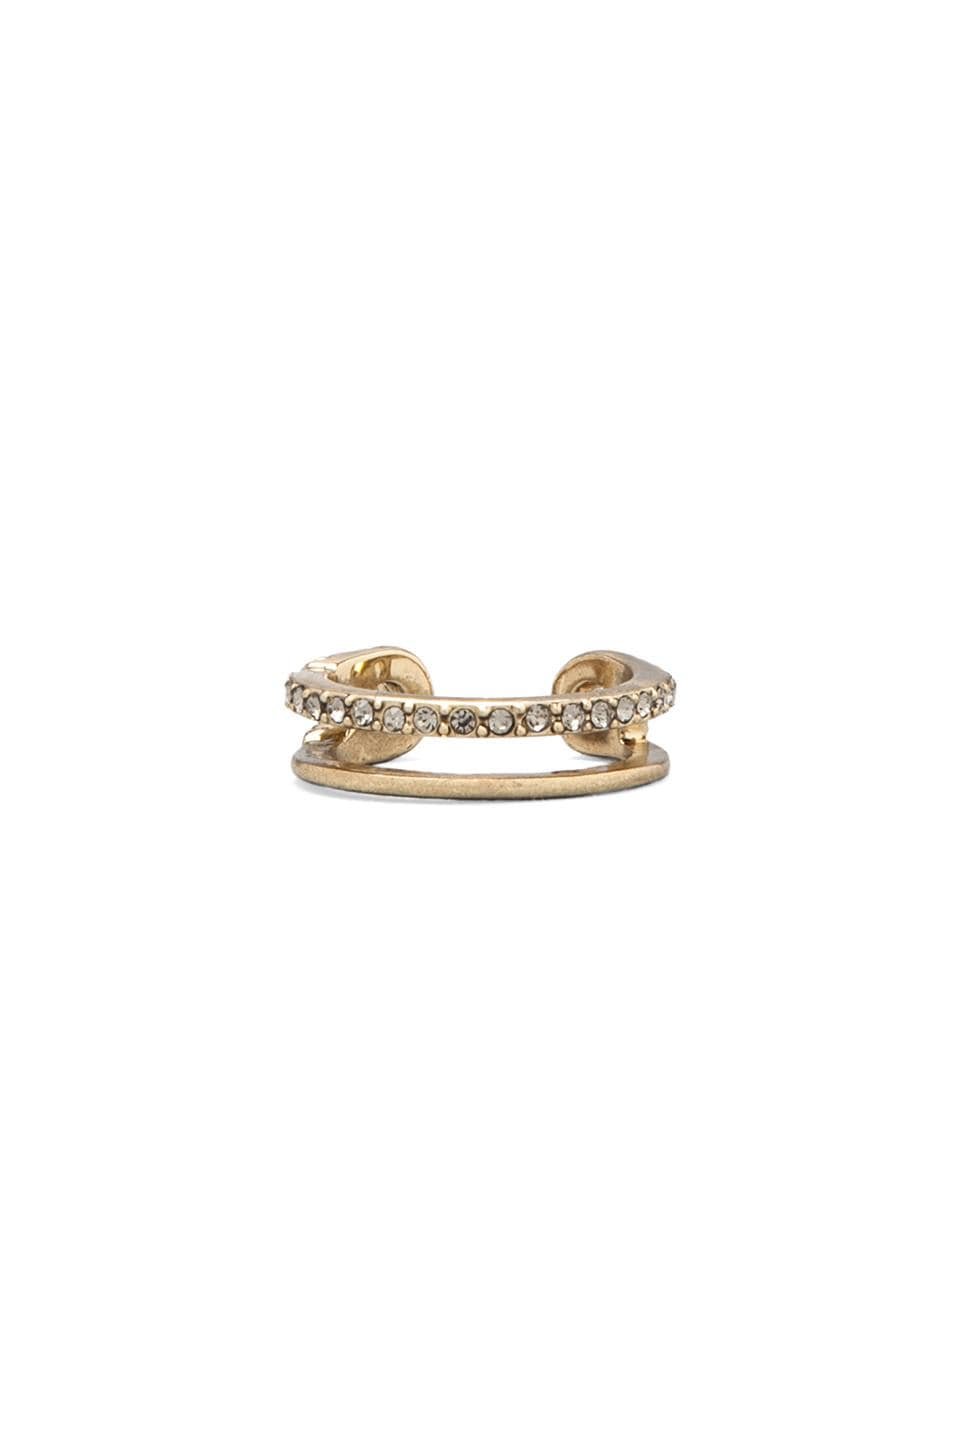 House of Harlow 1960 House of Harlow Pave Safety Pin Wrap Ring в цвете Gold